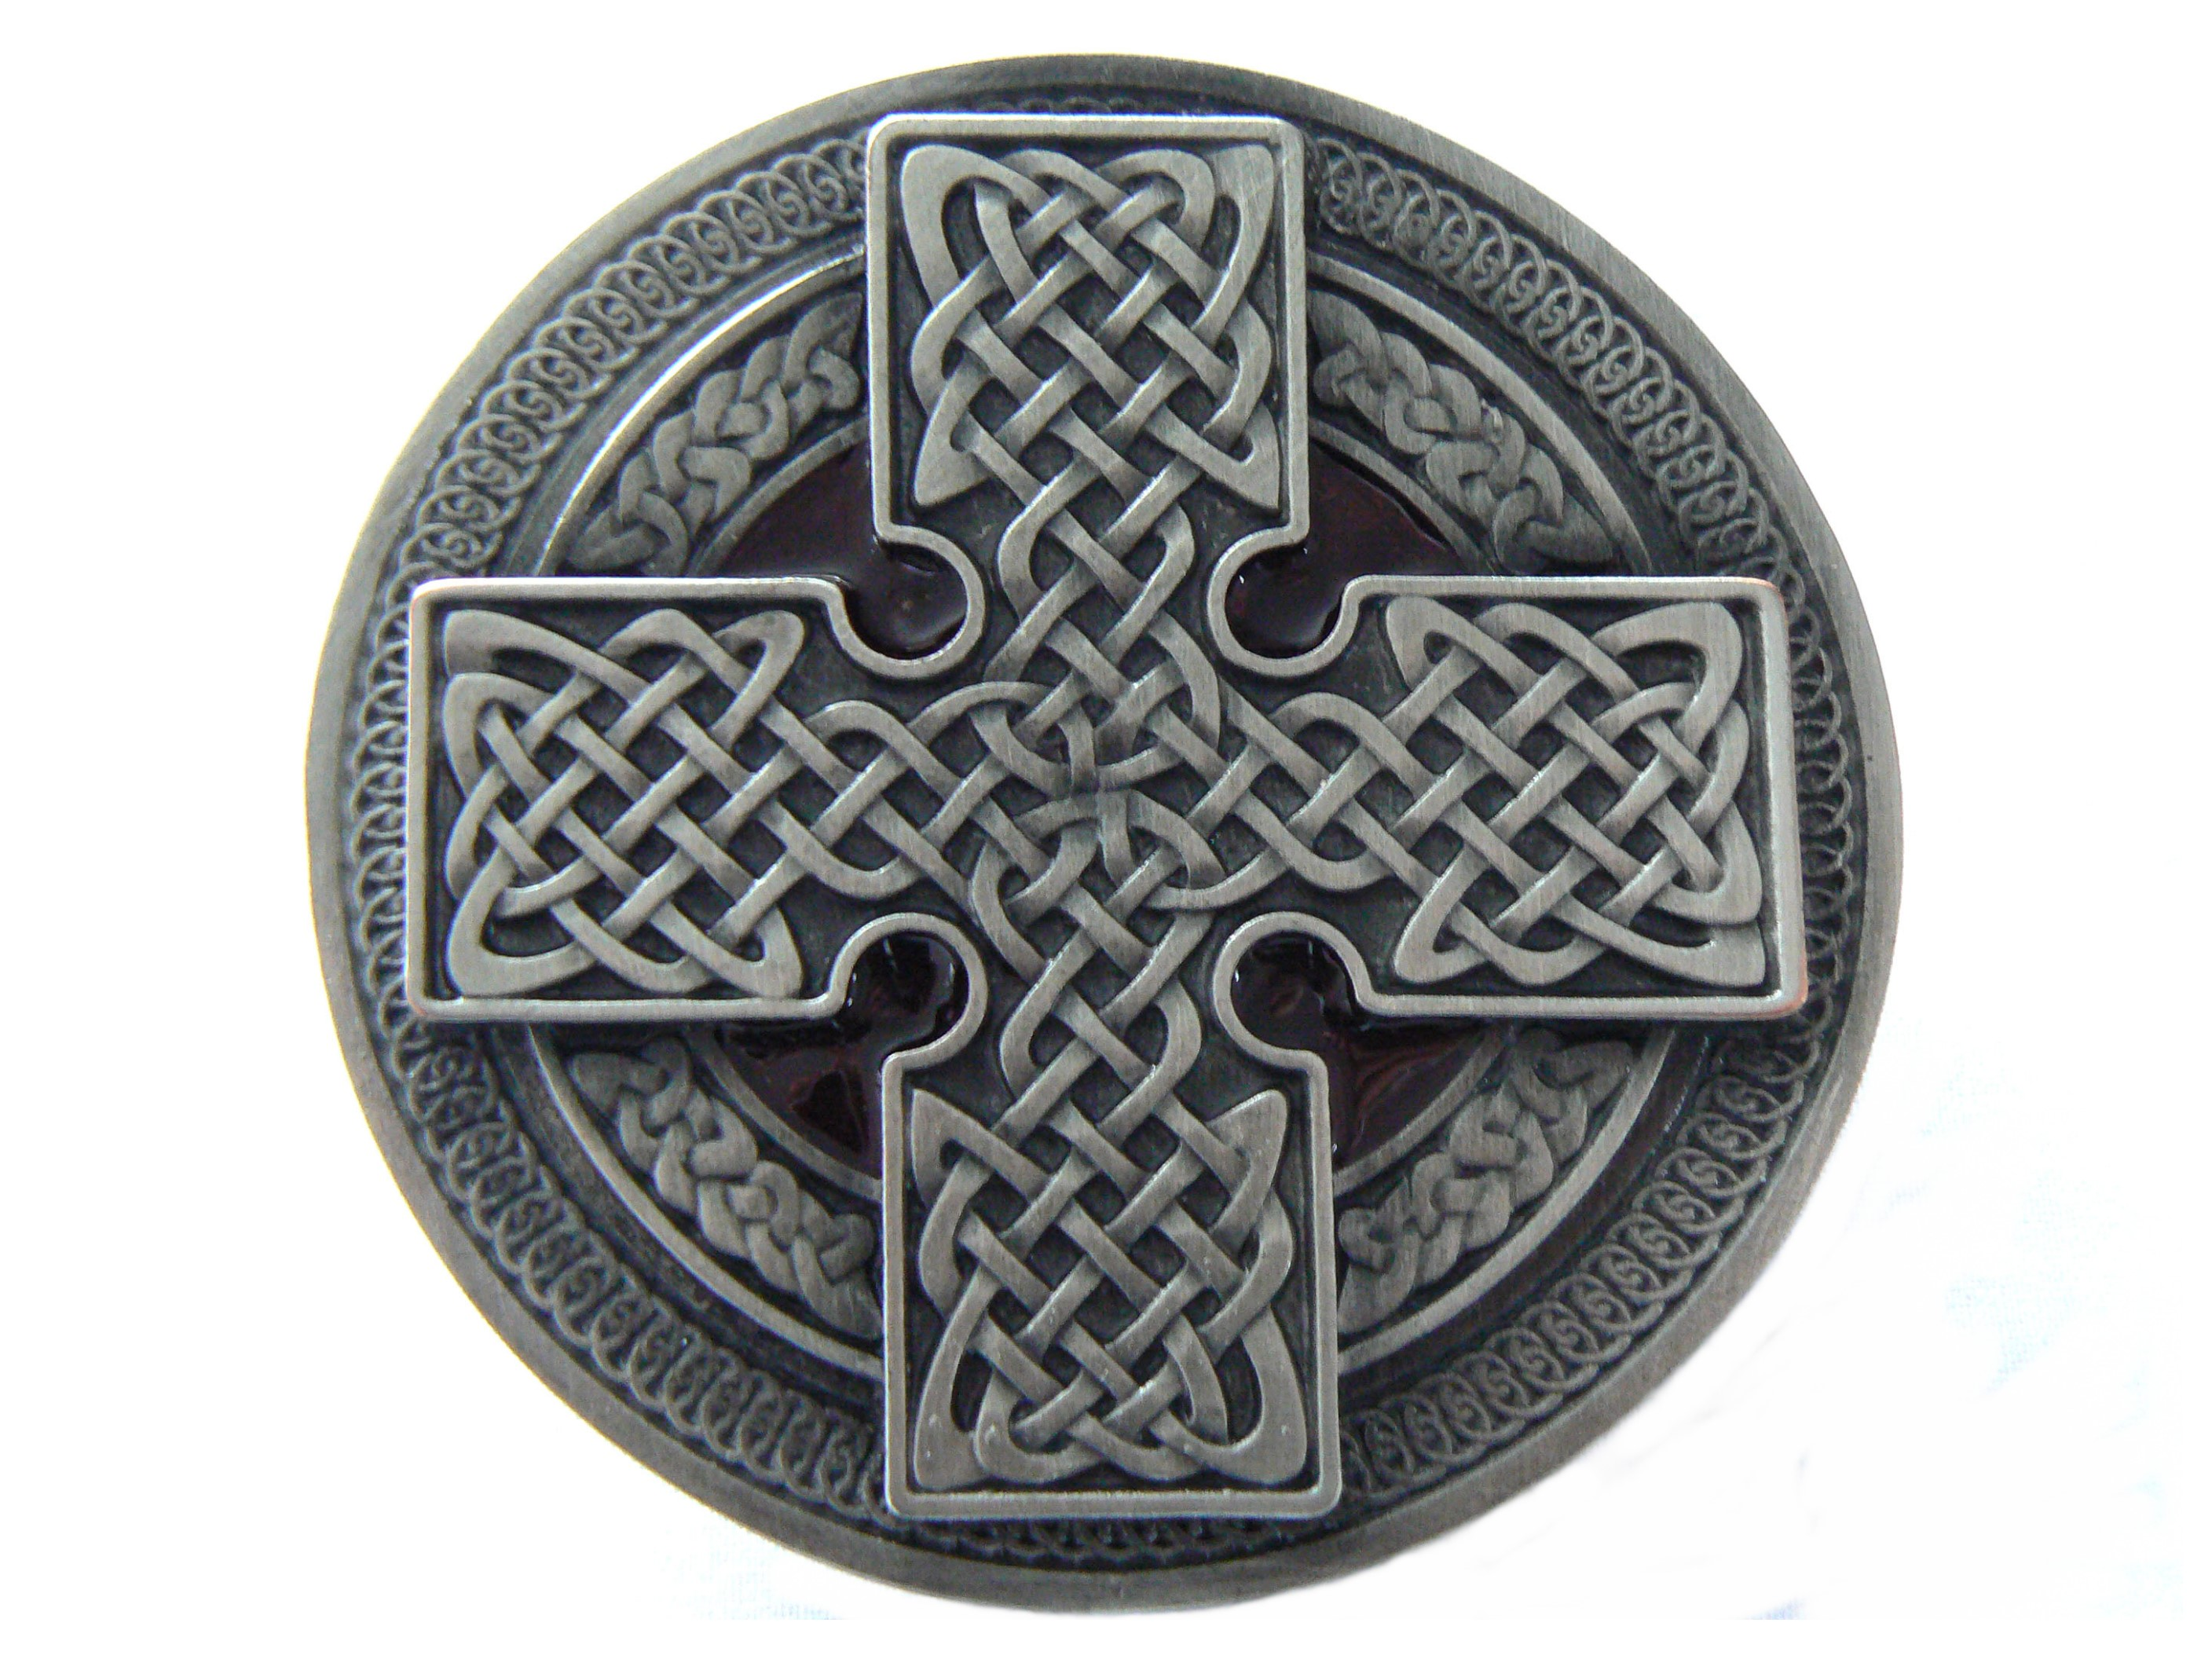 Celtic Knot Cross 1001R